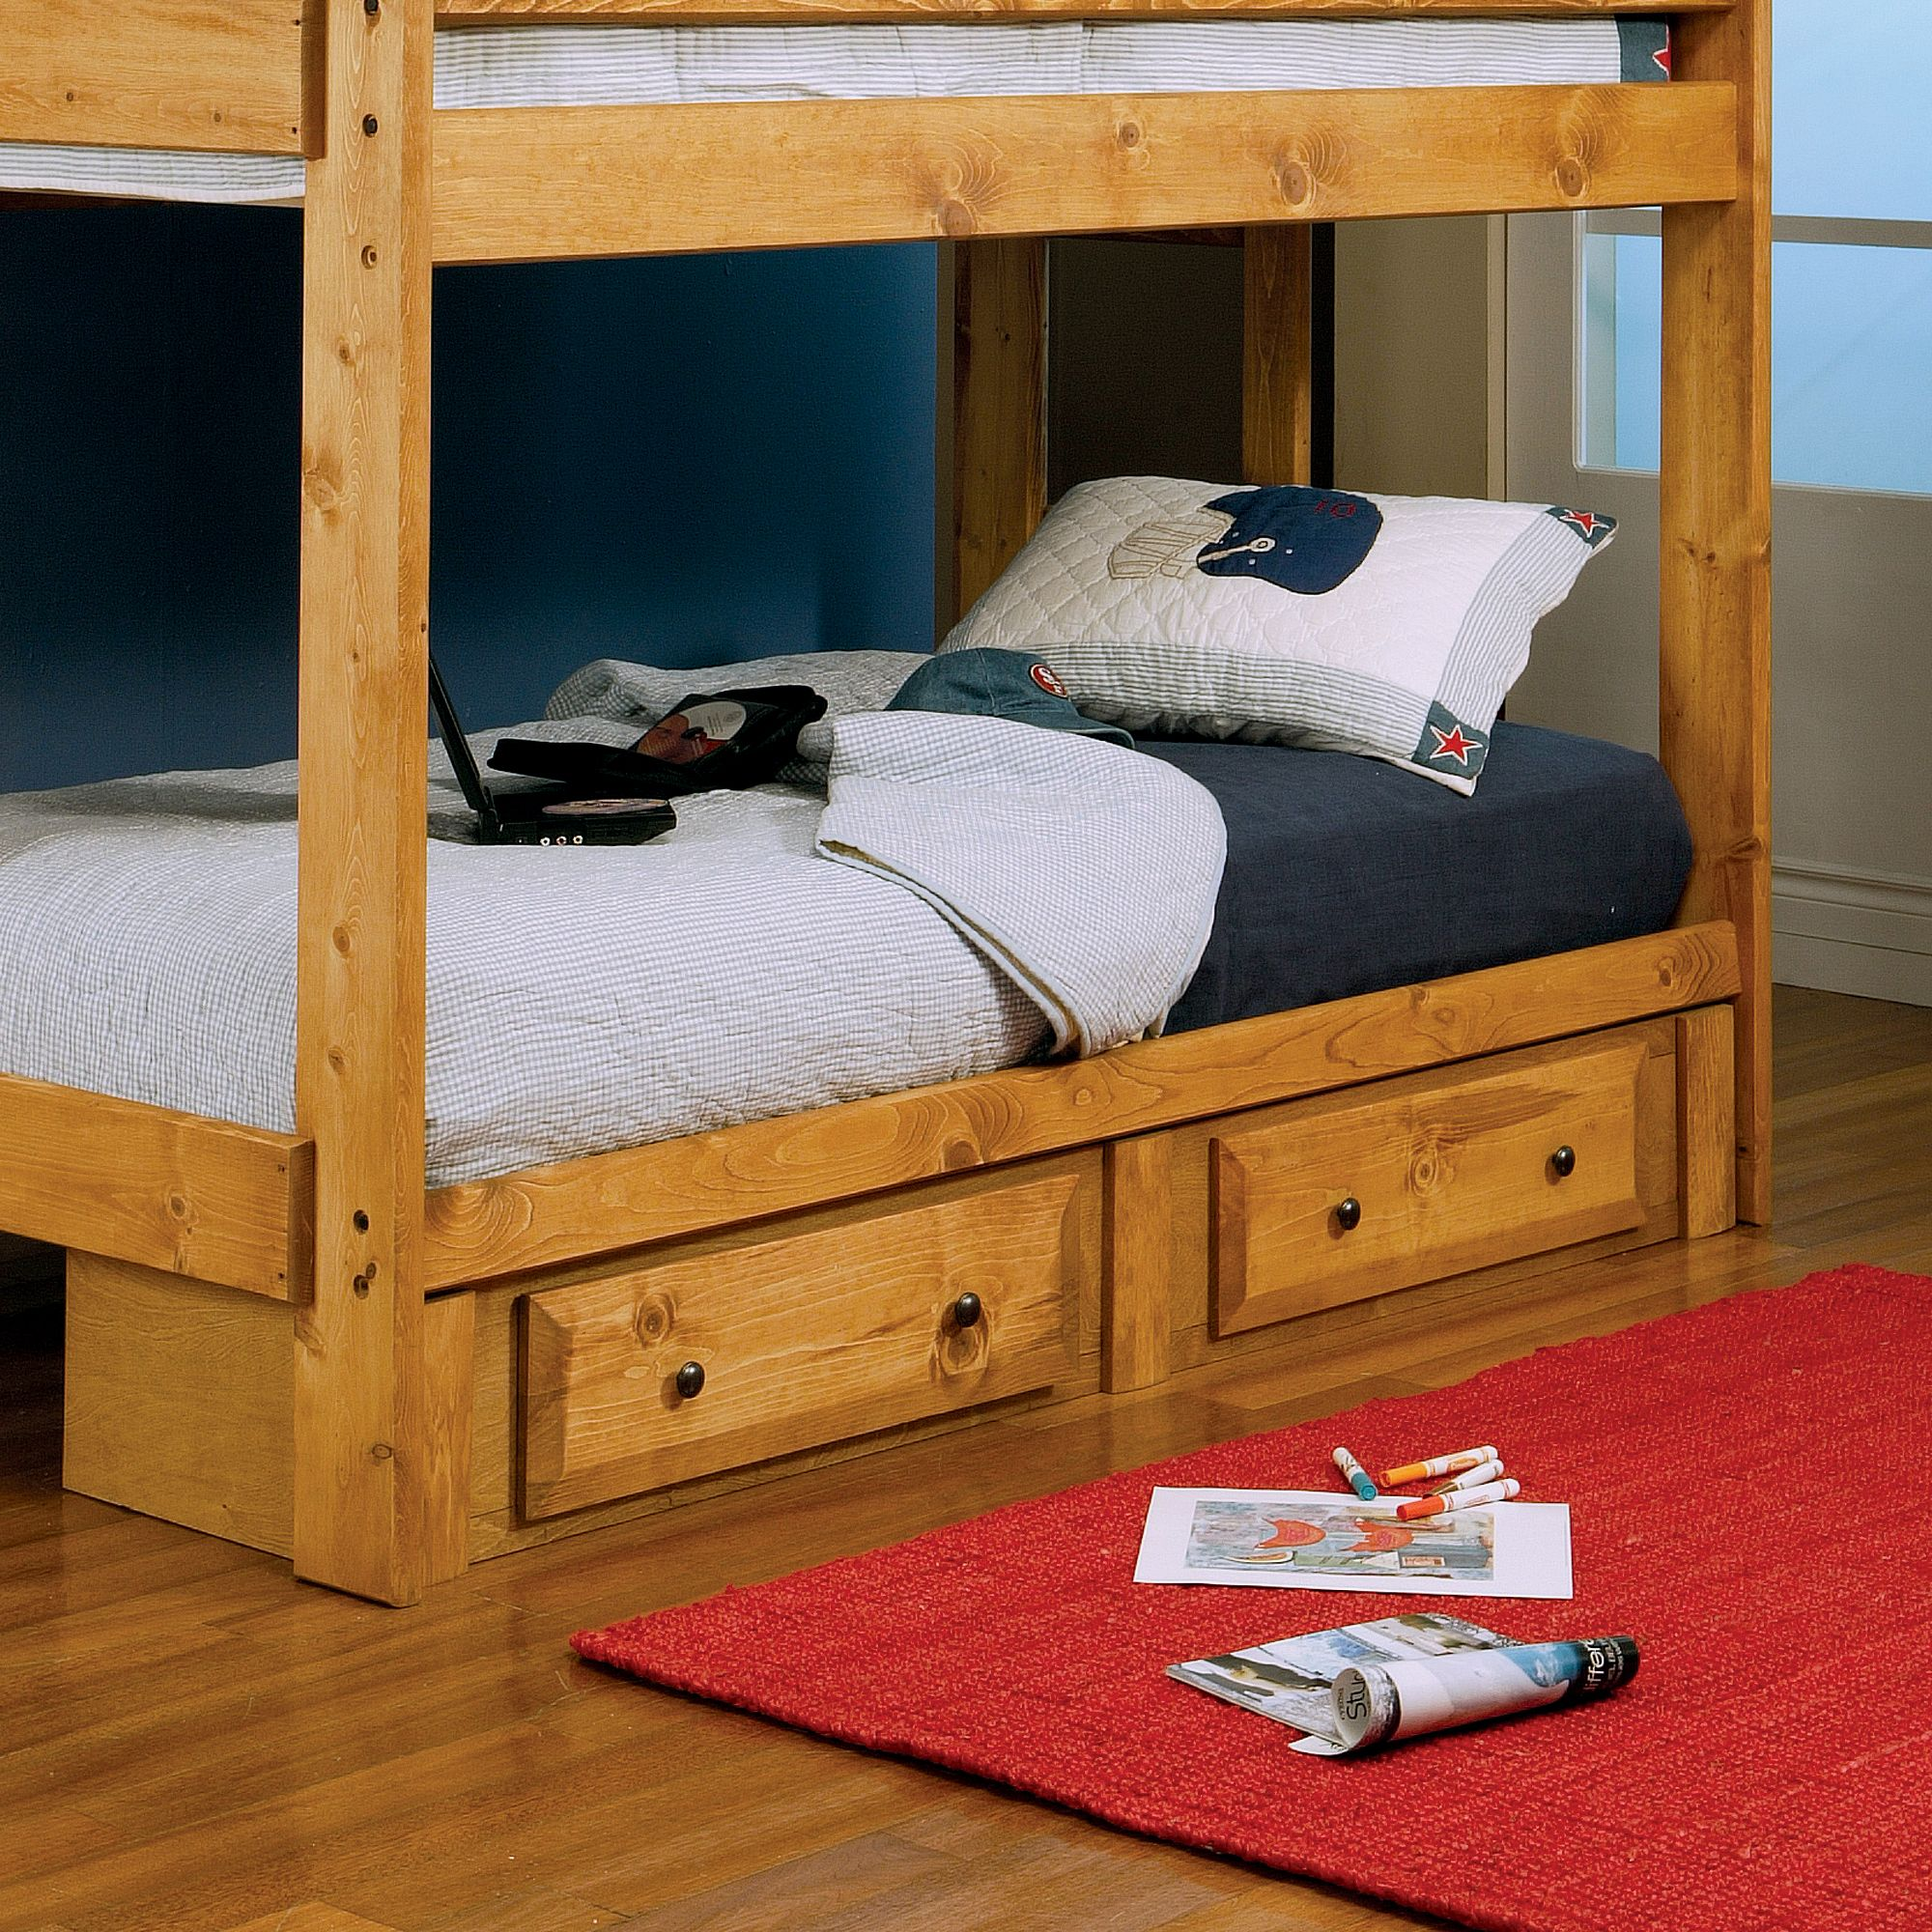 Coaster Company Wrangle Hill Under Bed Storage, Amber Wash Finish by Coaster of America